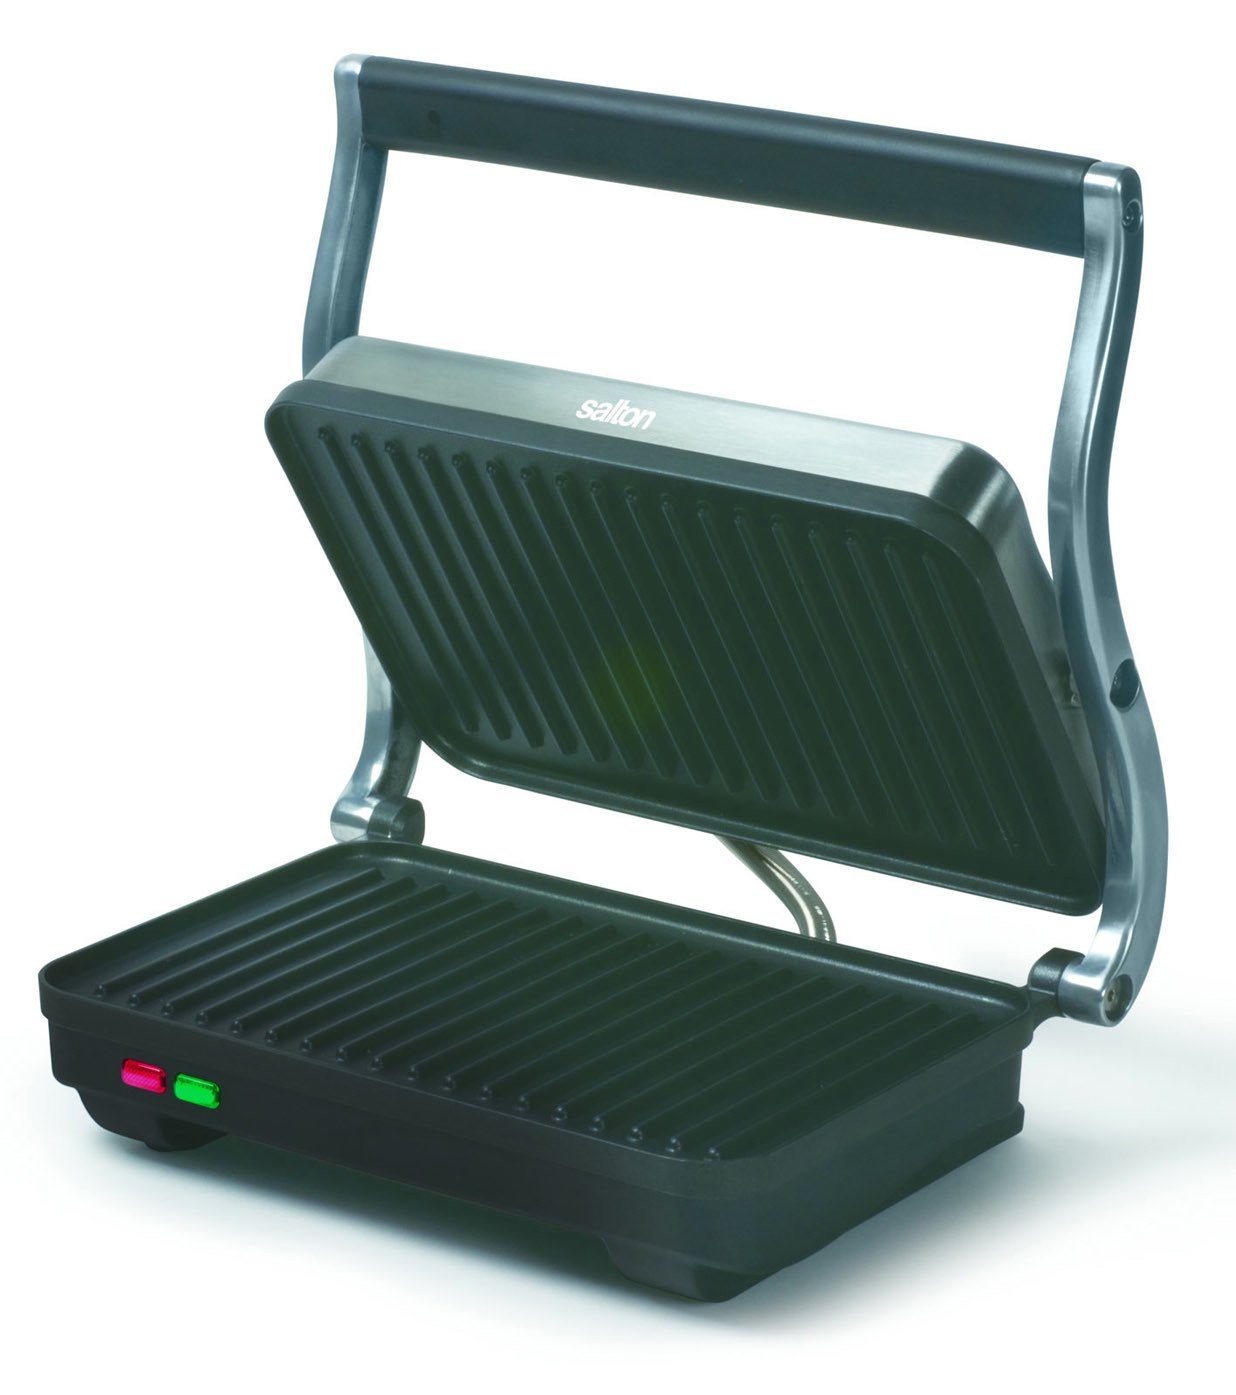 Salton SG1263 Stainless Steel Panini Grill